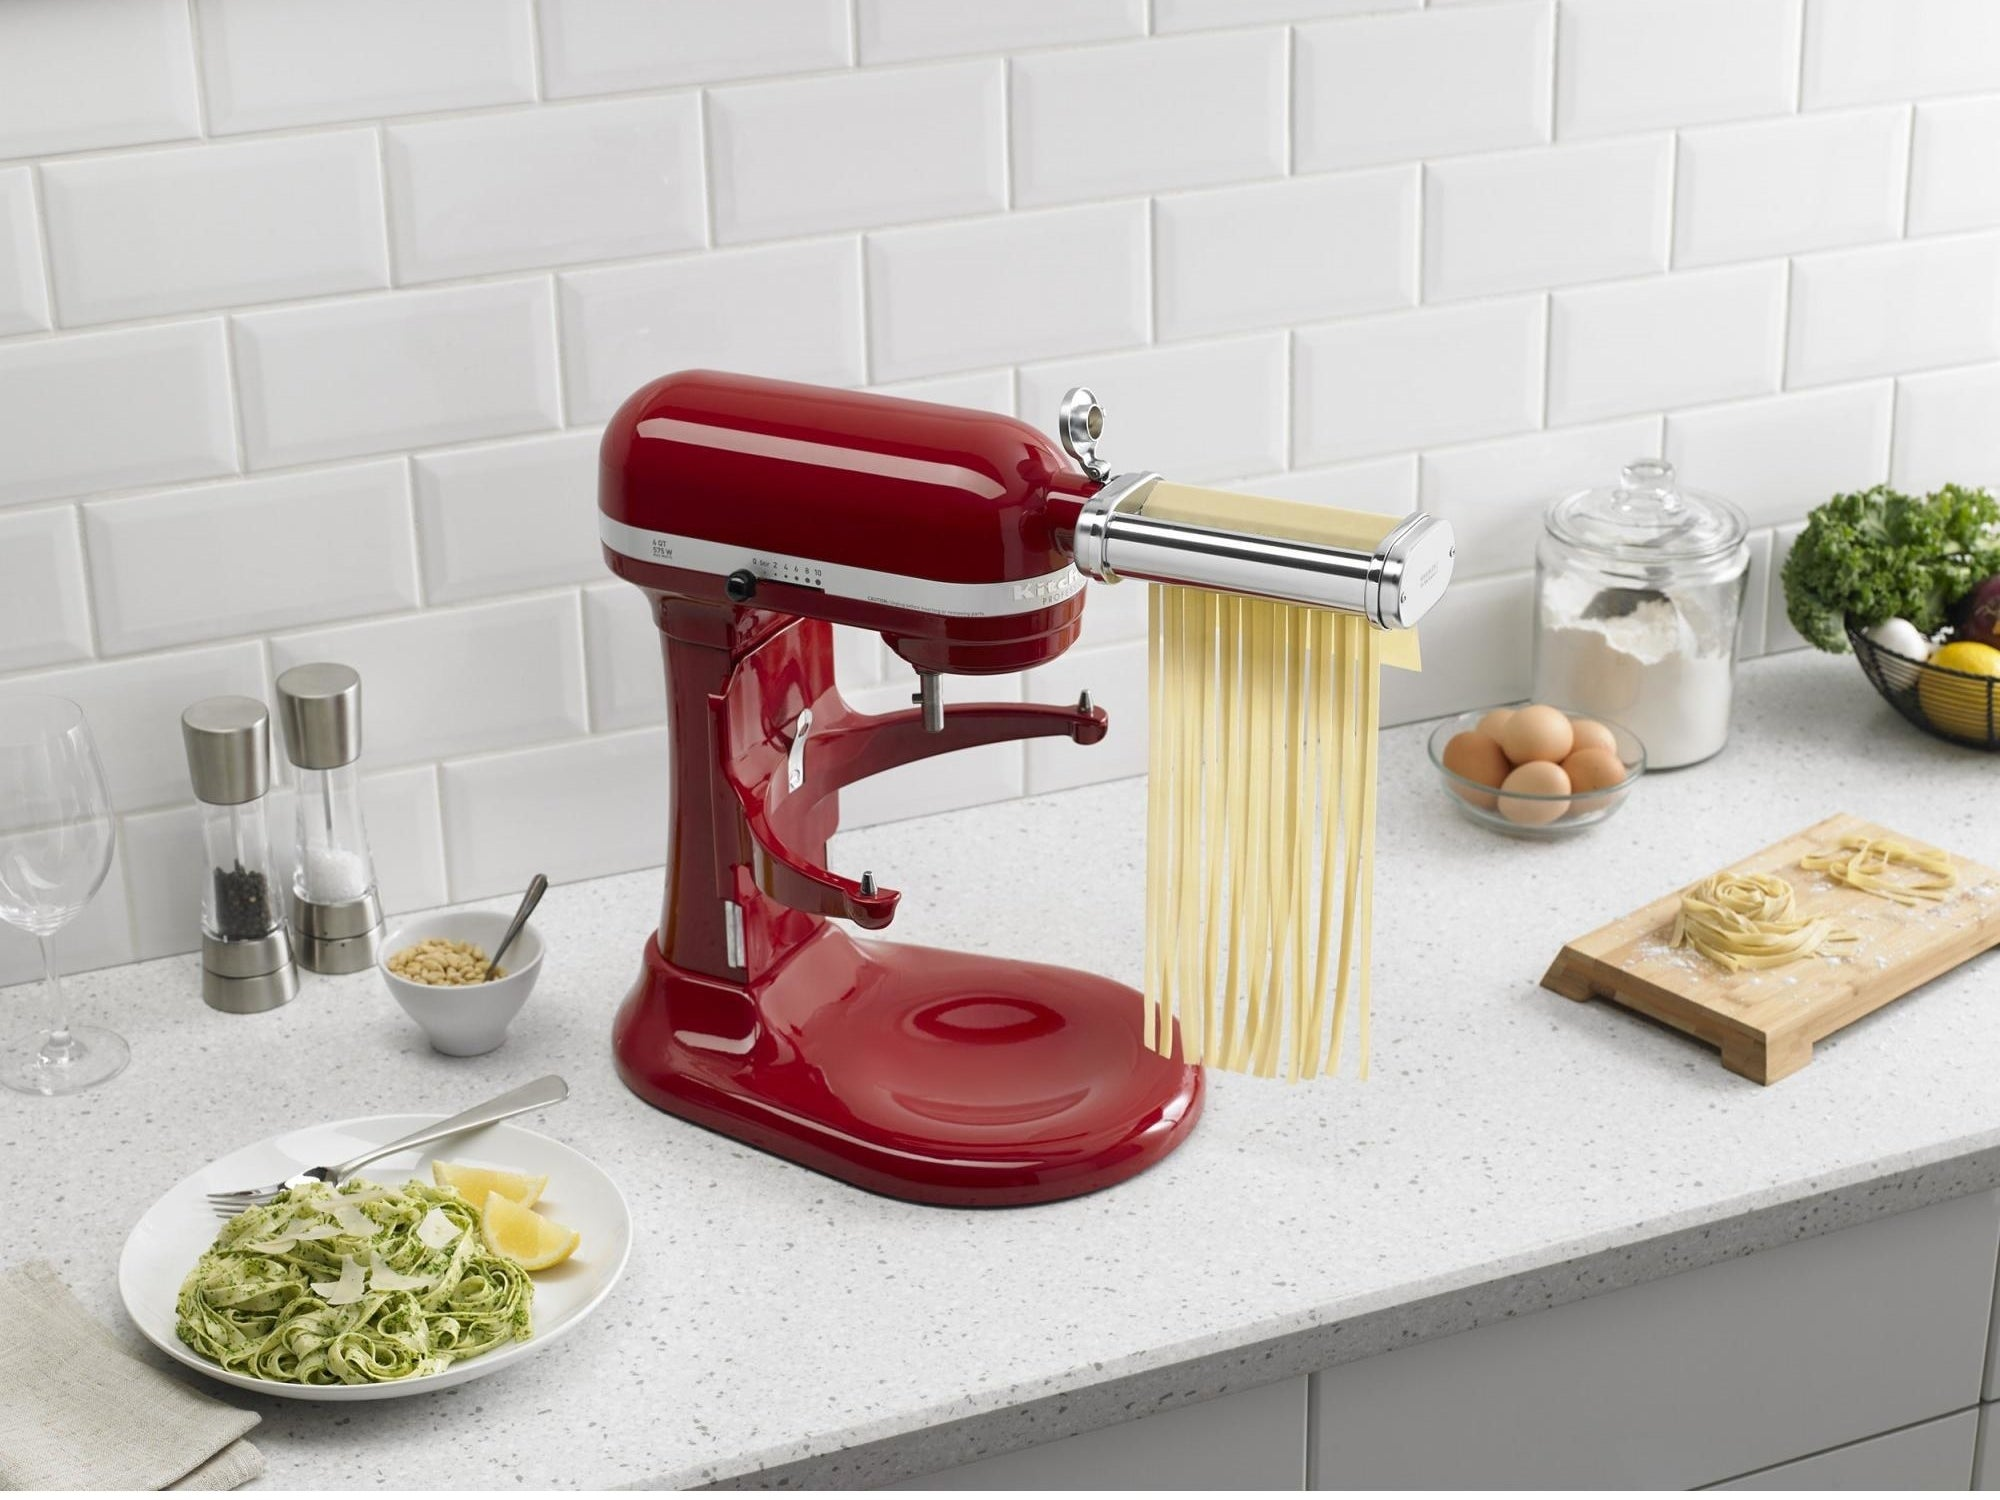 the attachment connected to the mixer making pasta